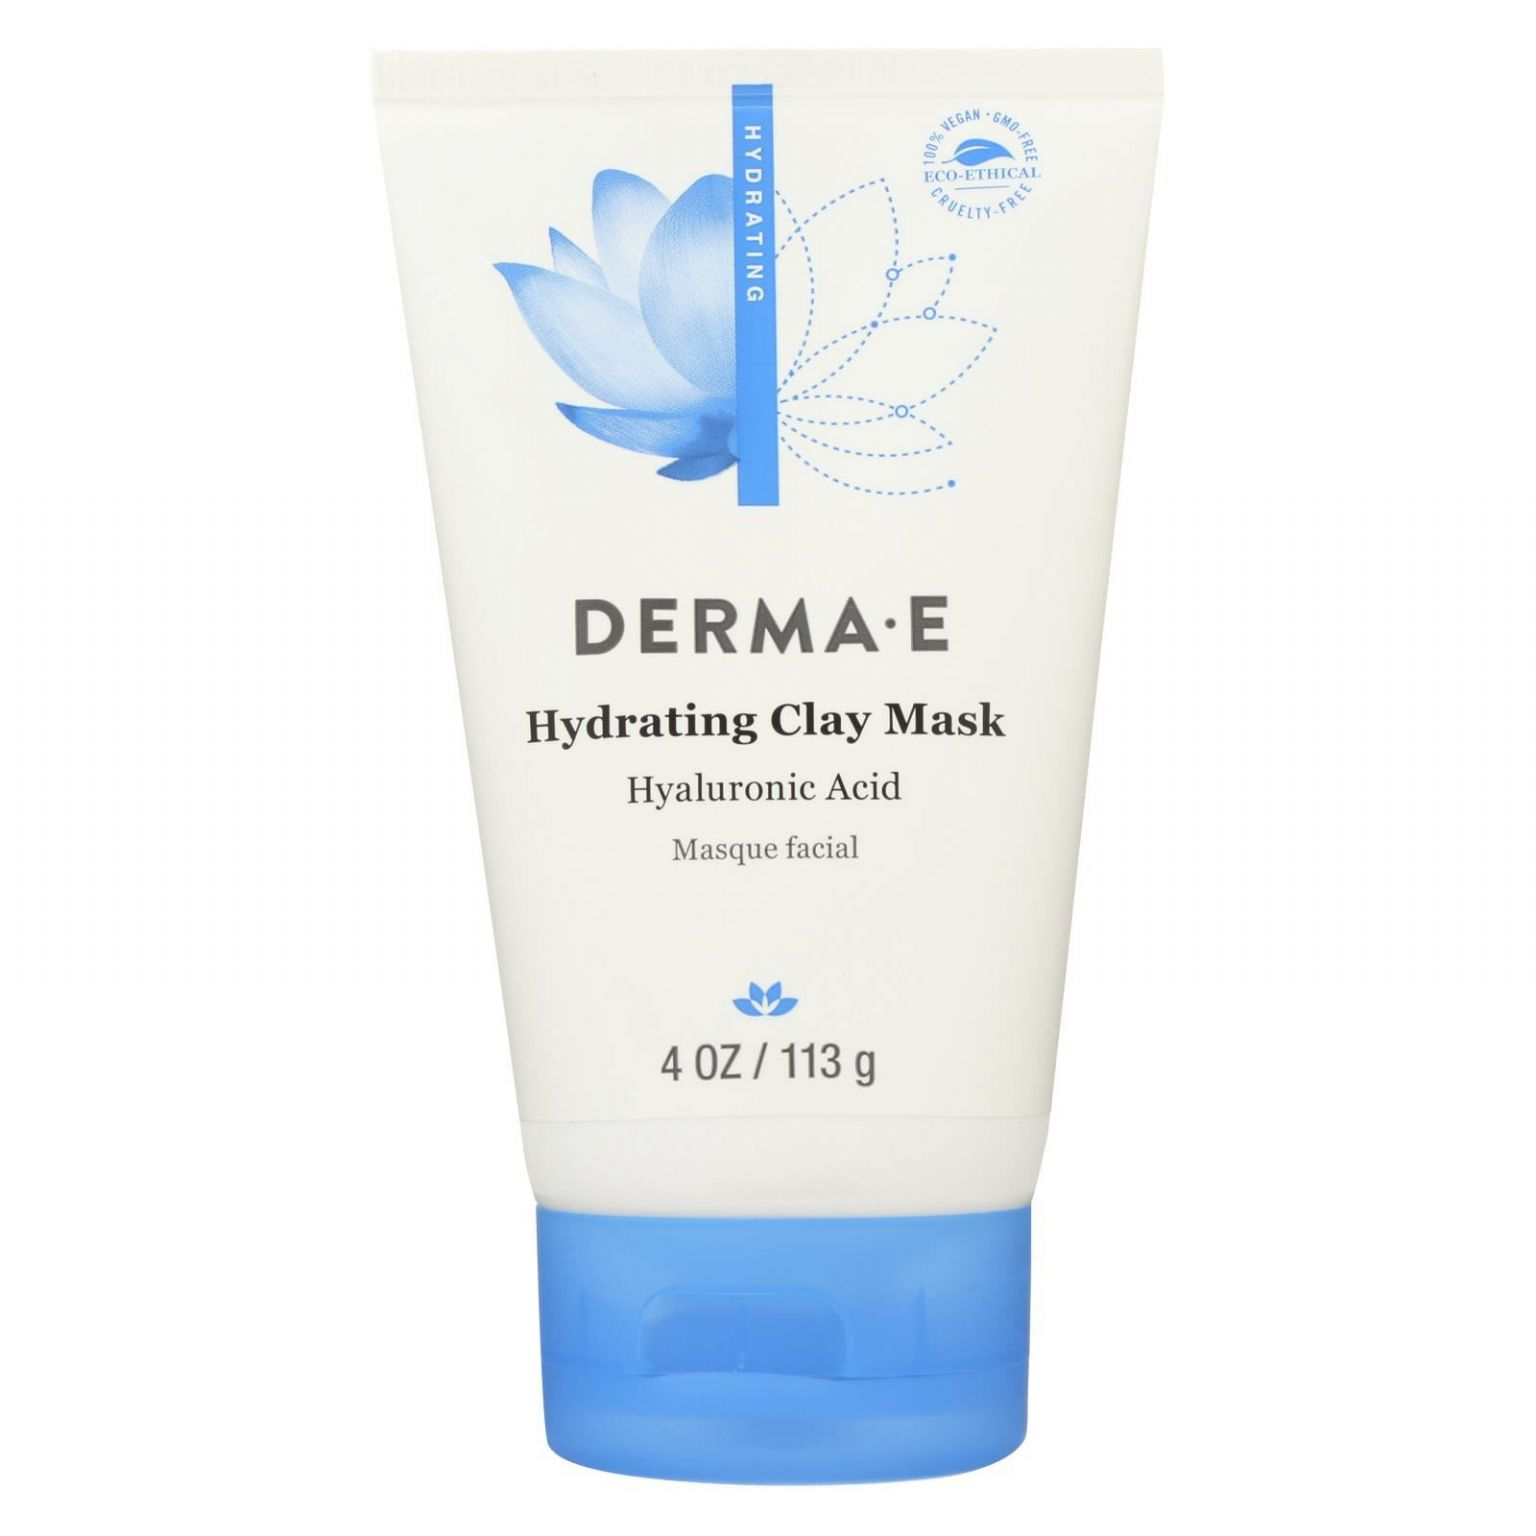 Hydrating Clay Mask with Hyaluronic Acid